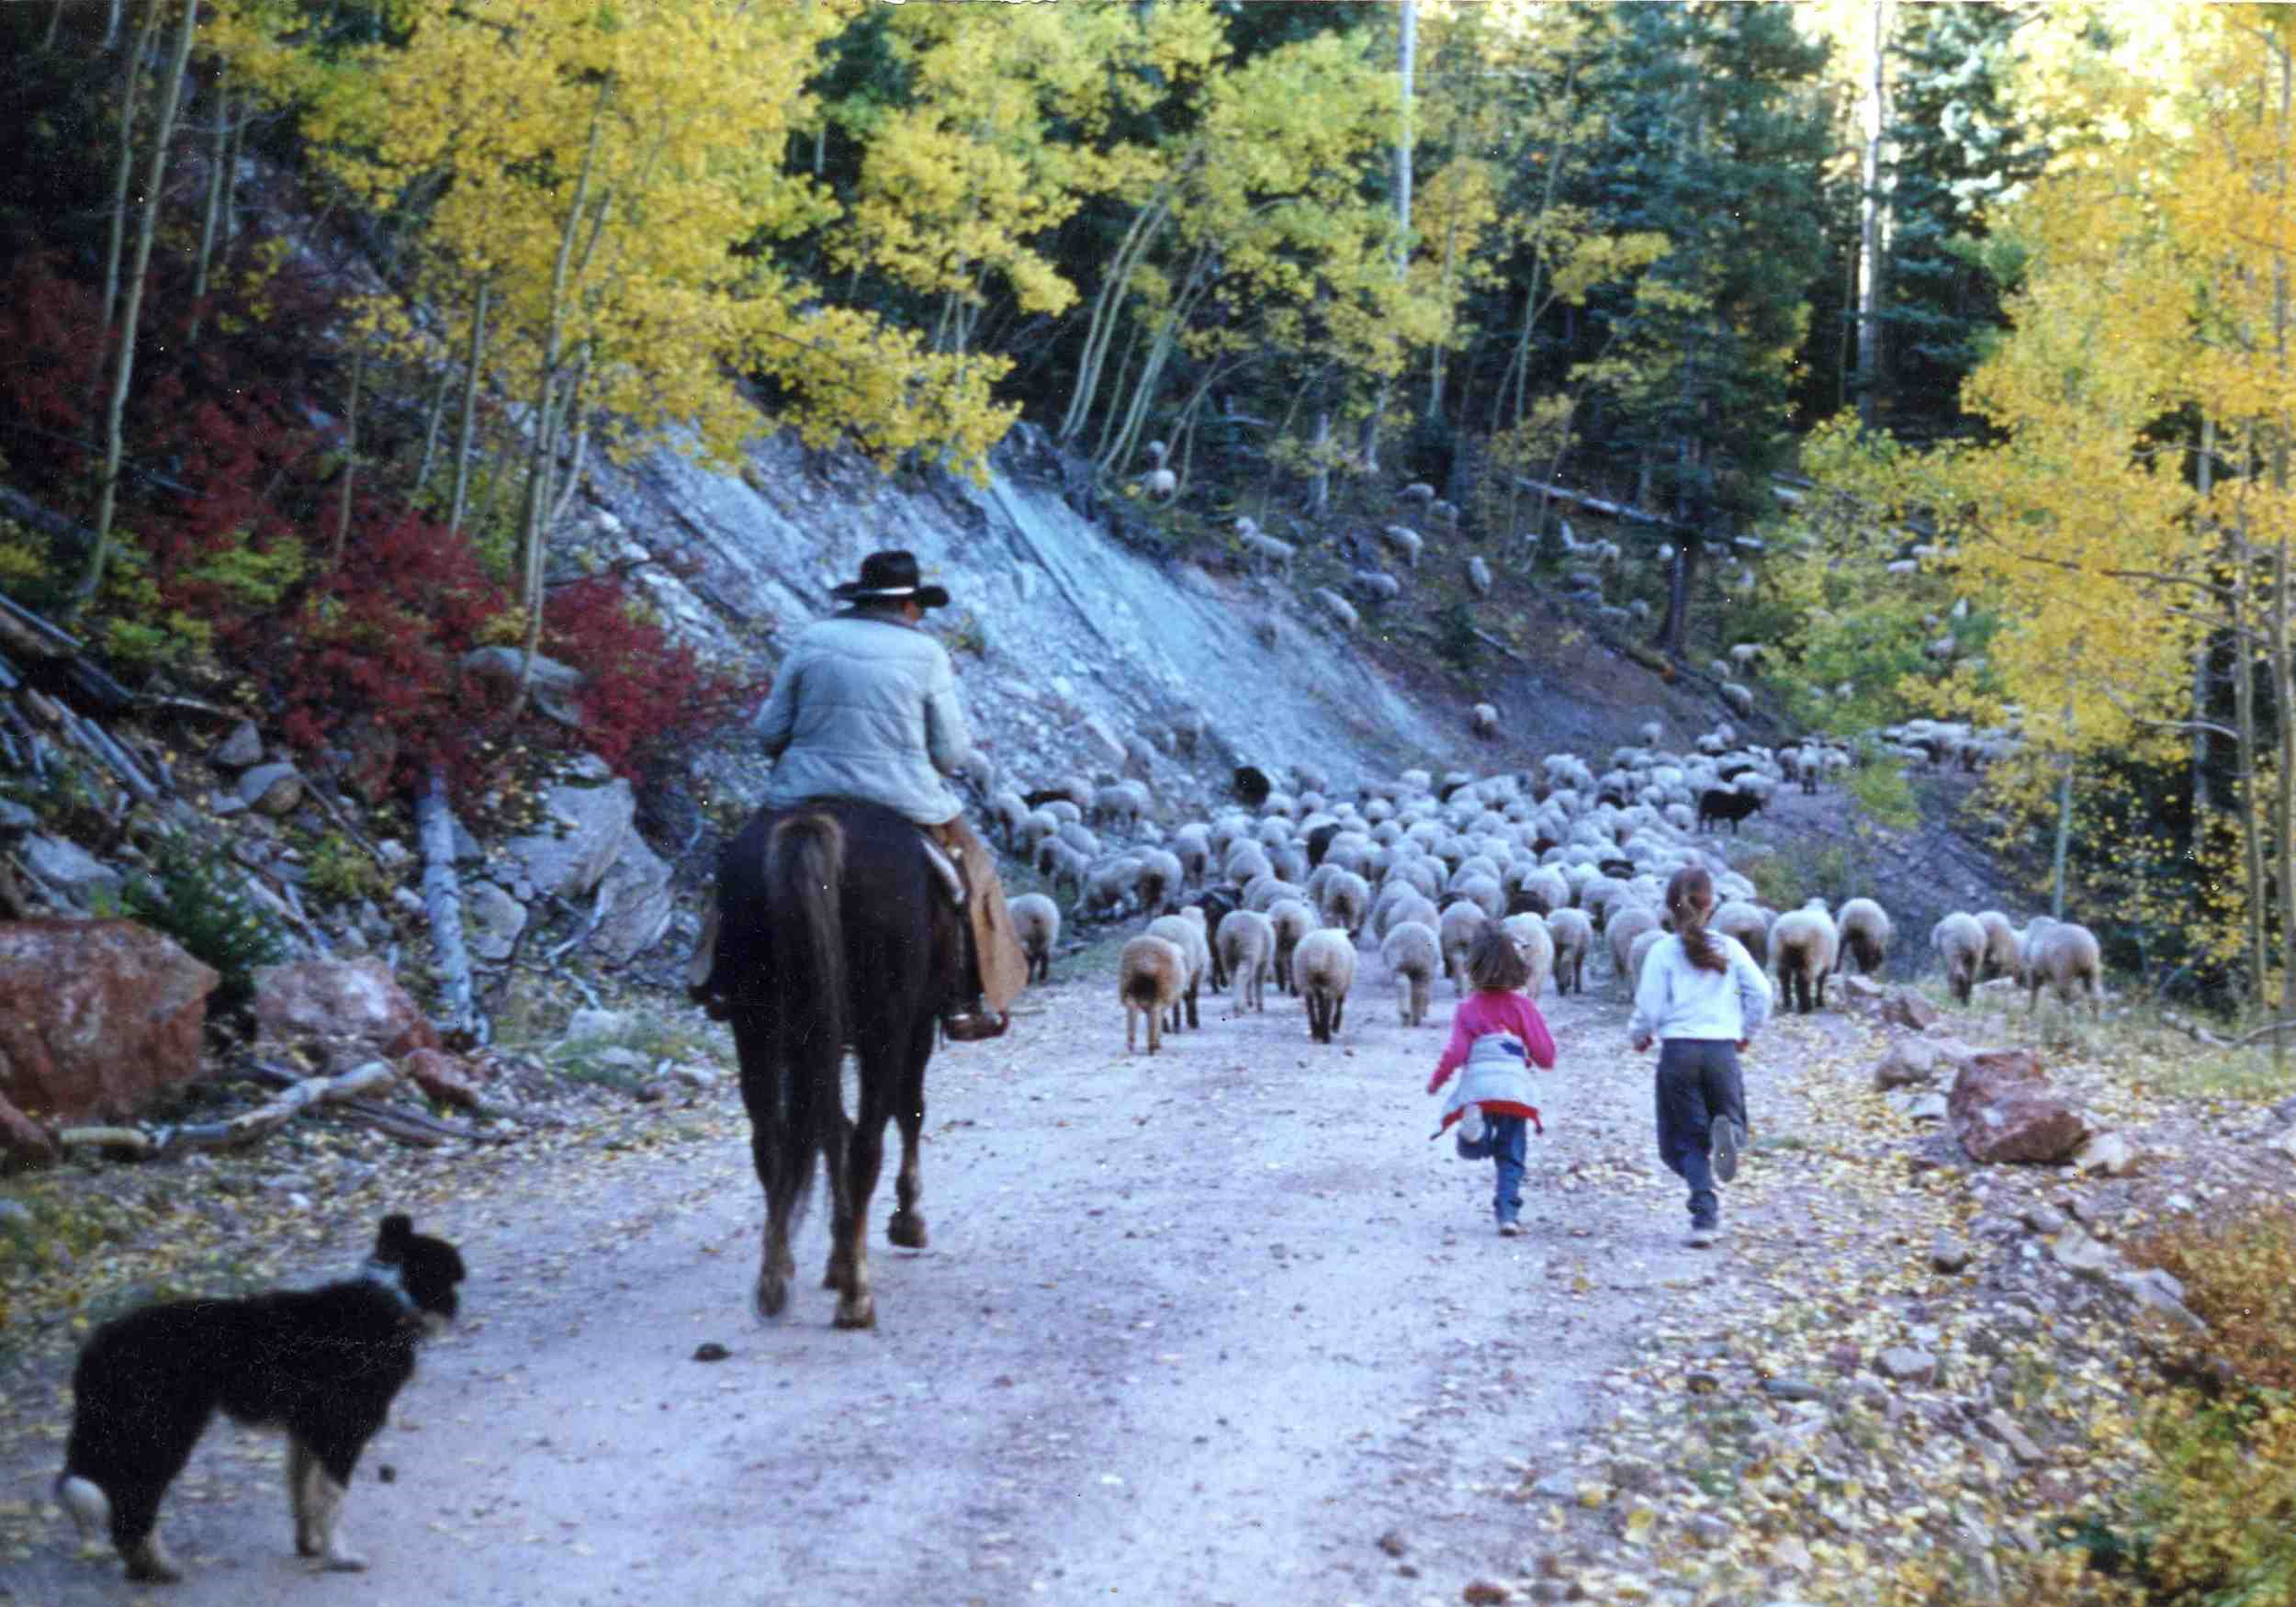 My sister and I run behind the family sheep under the watchful eye of the shepherd, Martín Romero.